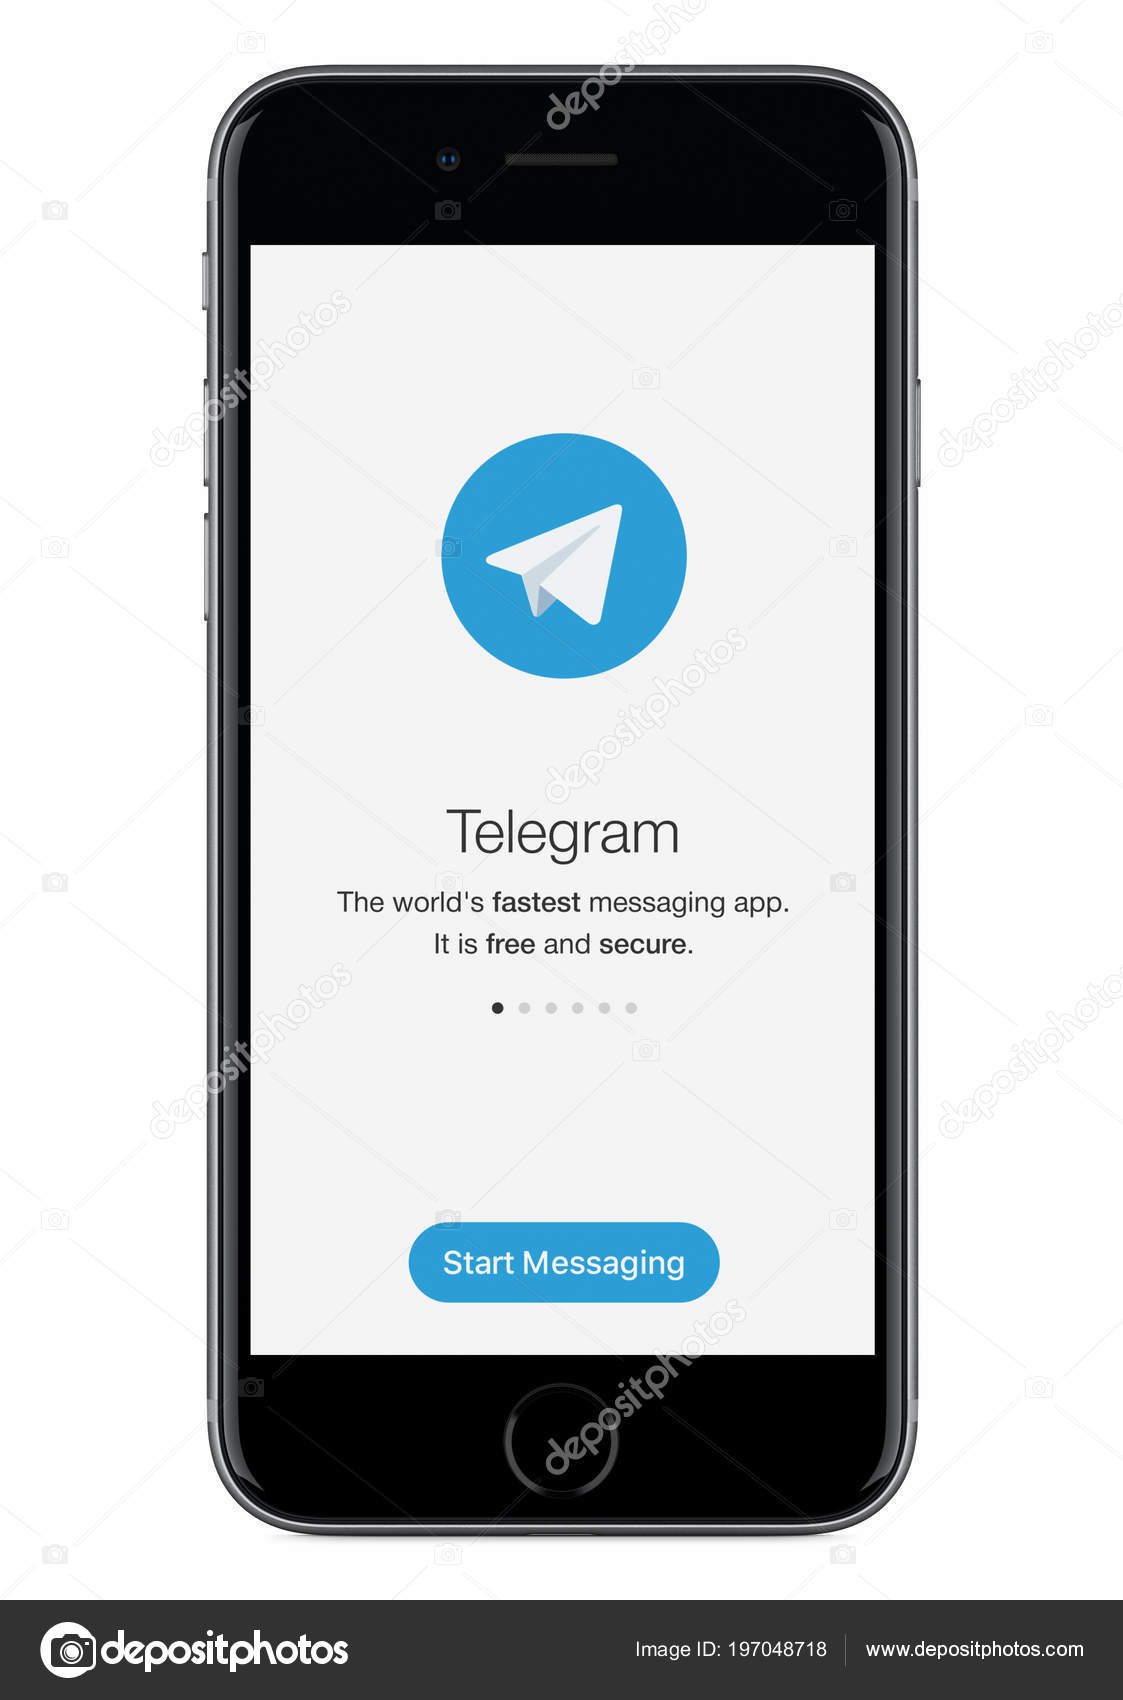 Telegram Messenger Launch Screen With Telegram Logo On Black Apple